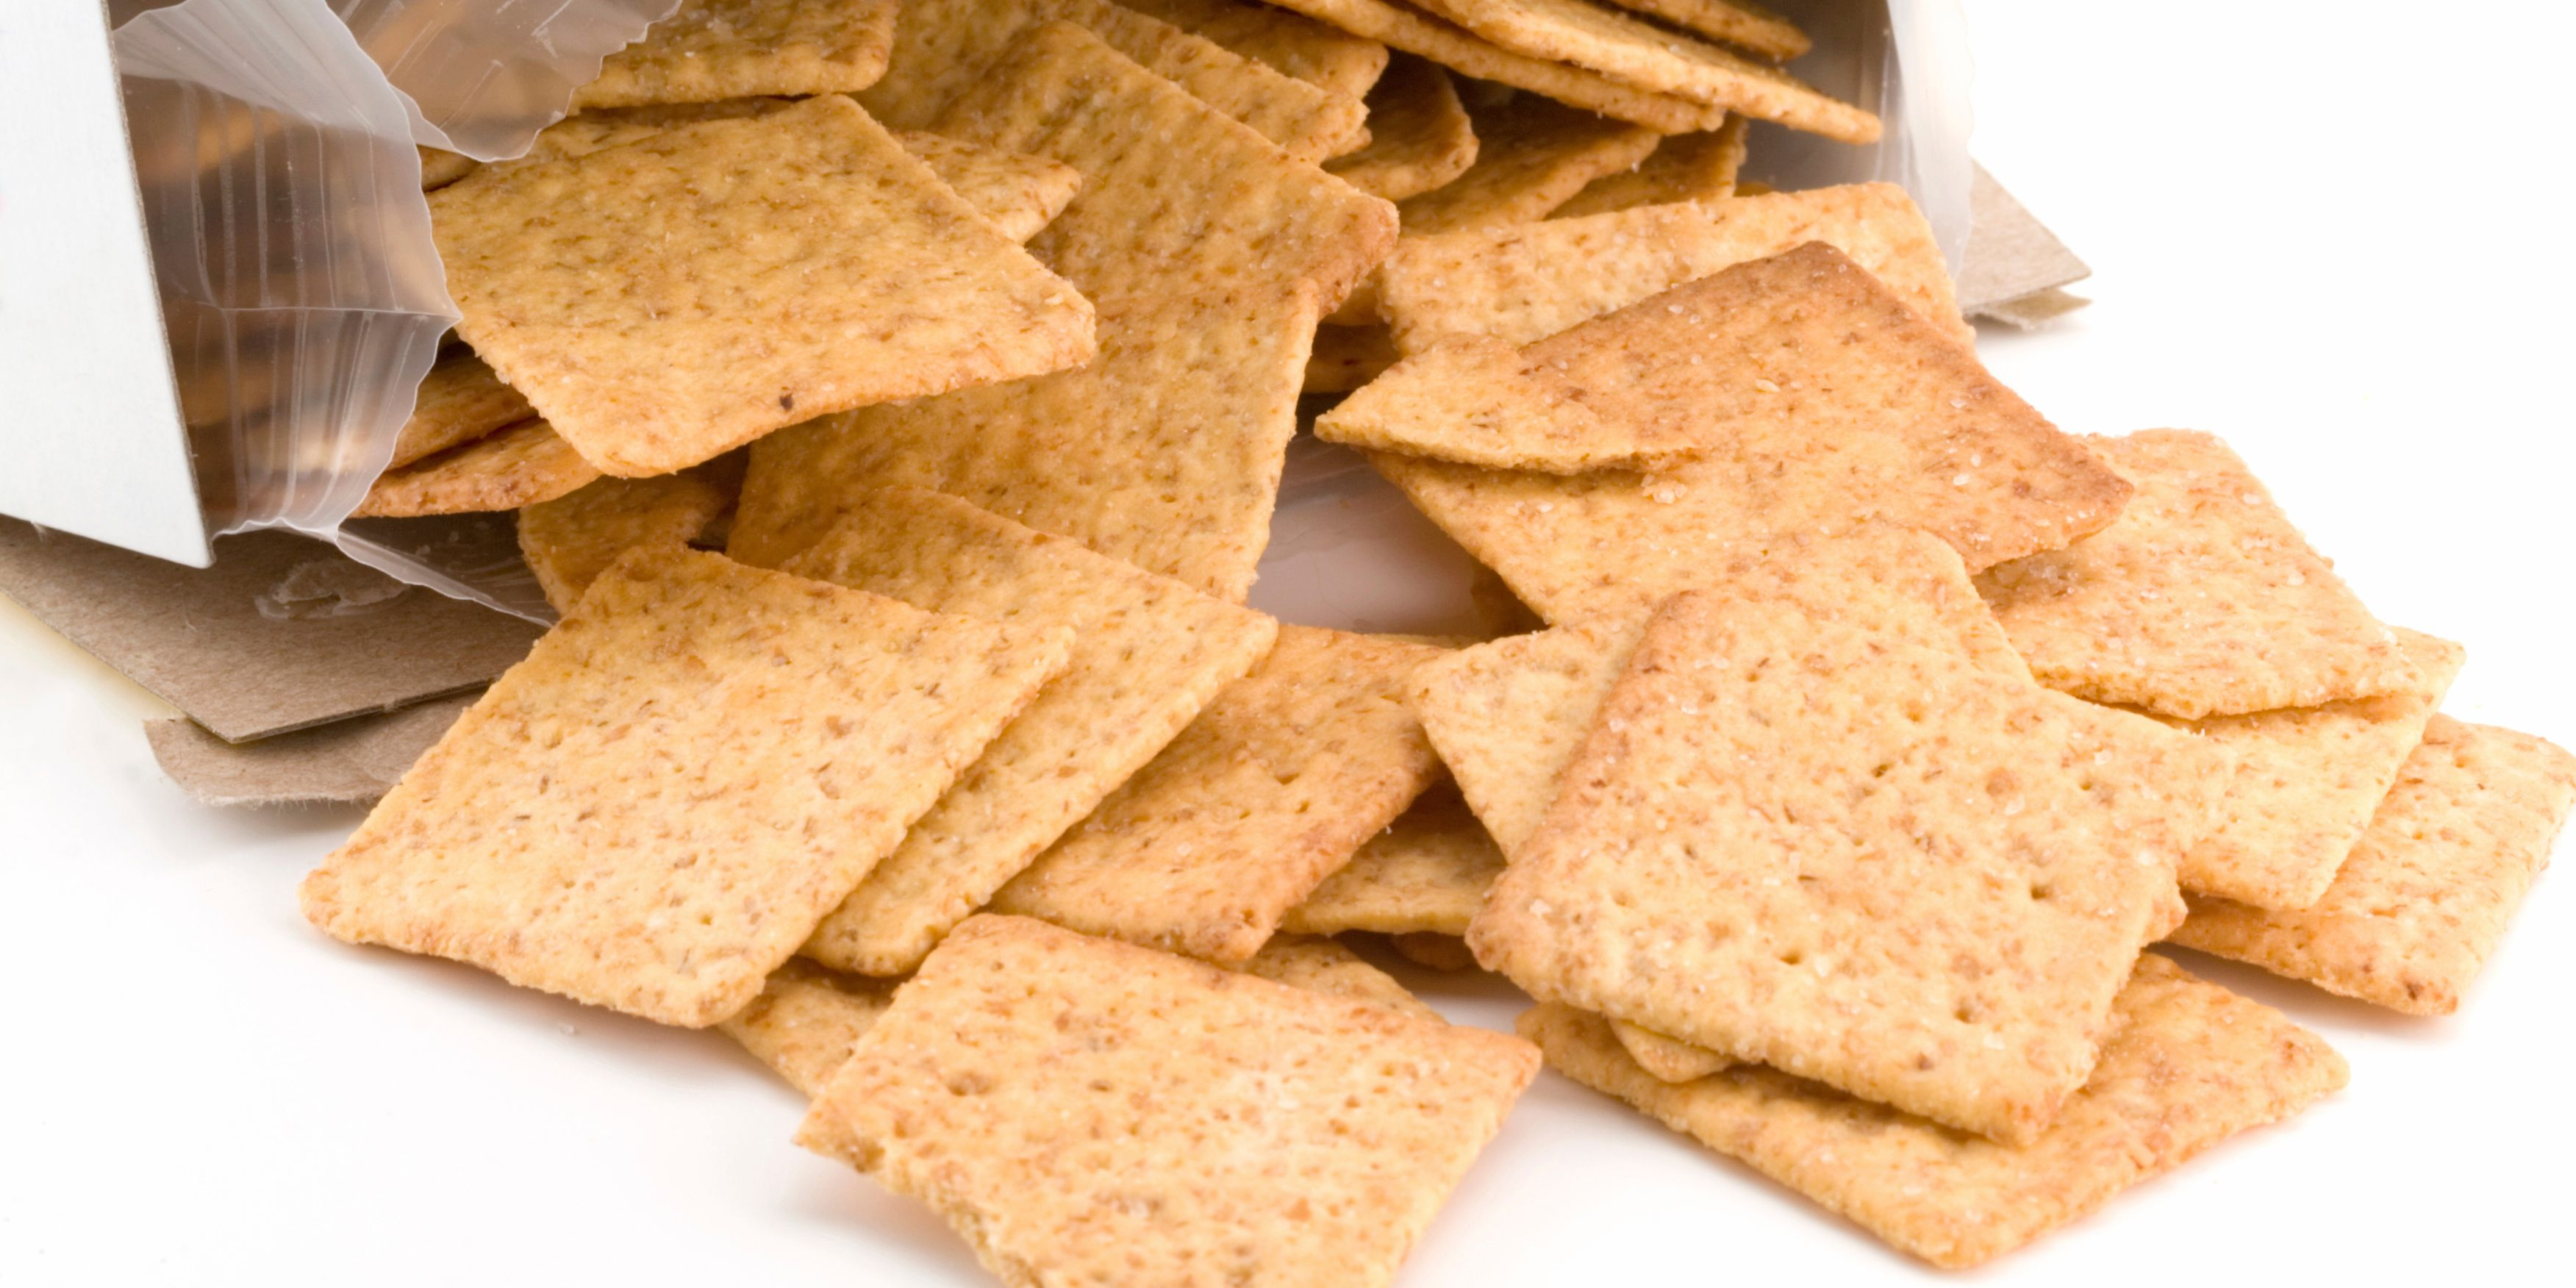 Snack Packaging | DuPont Packaging Materials & Solutions